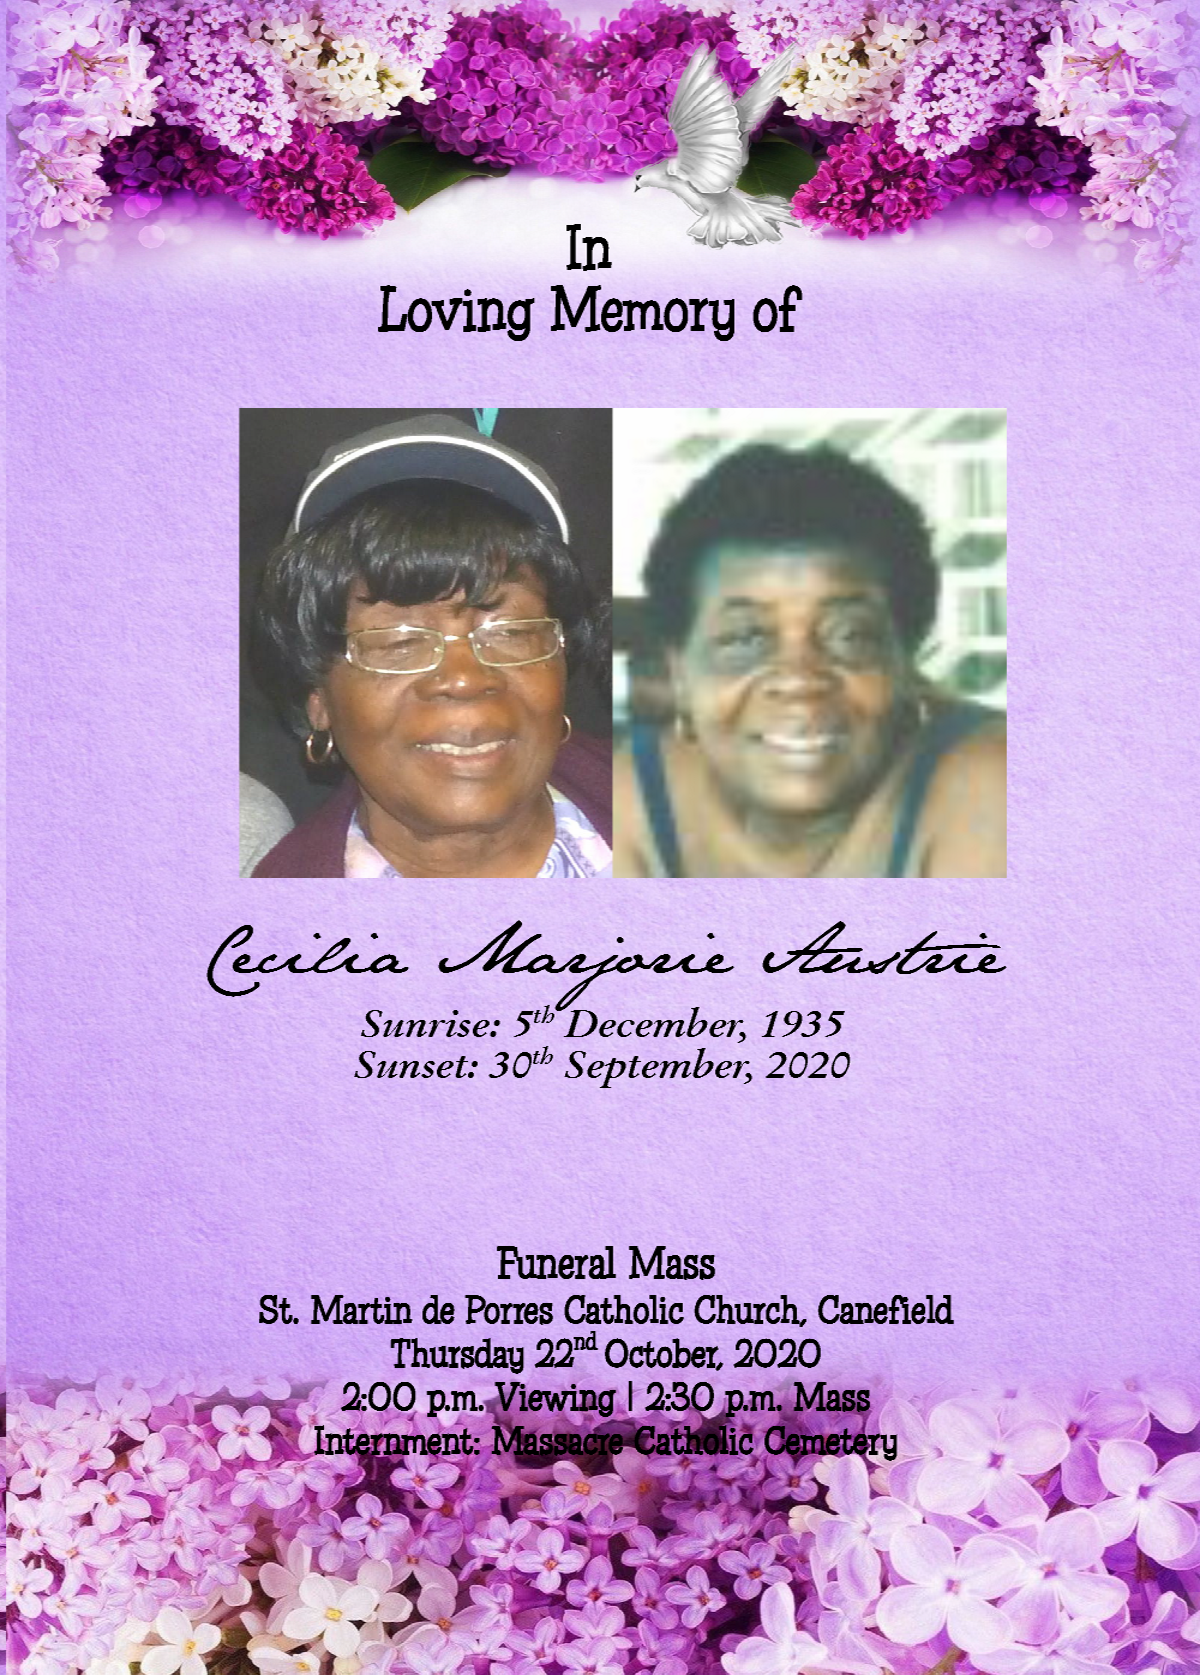 Funeral Mass of Cecilia Marjorie Austrie, 22 October 2020